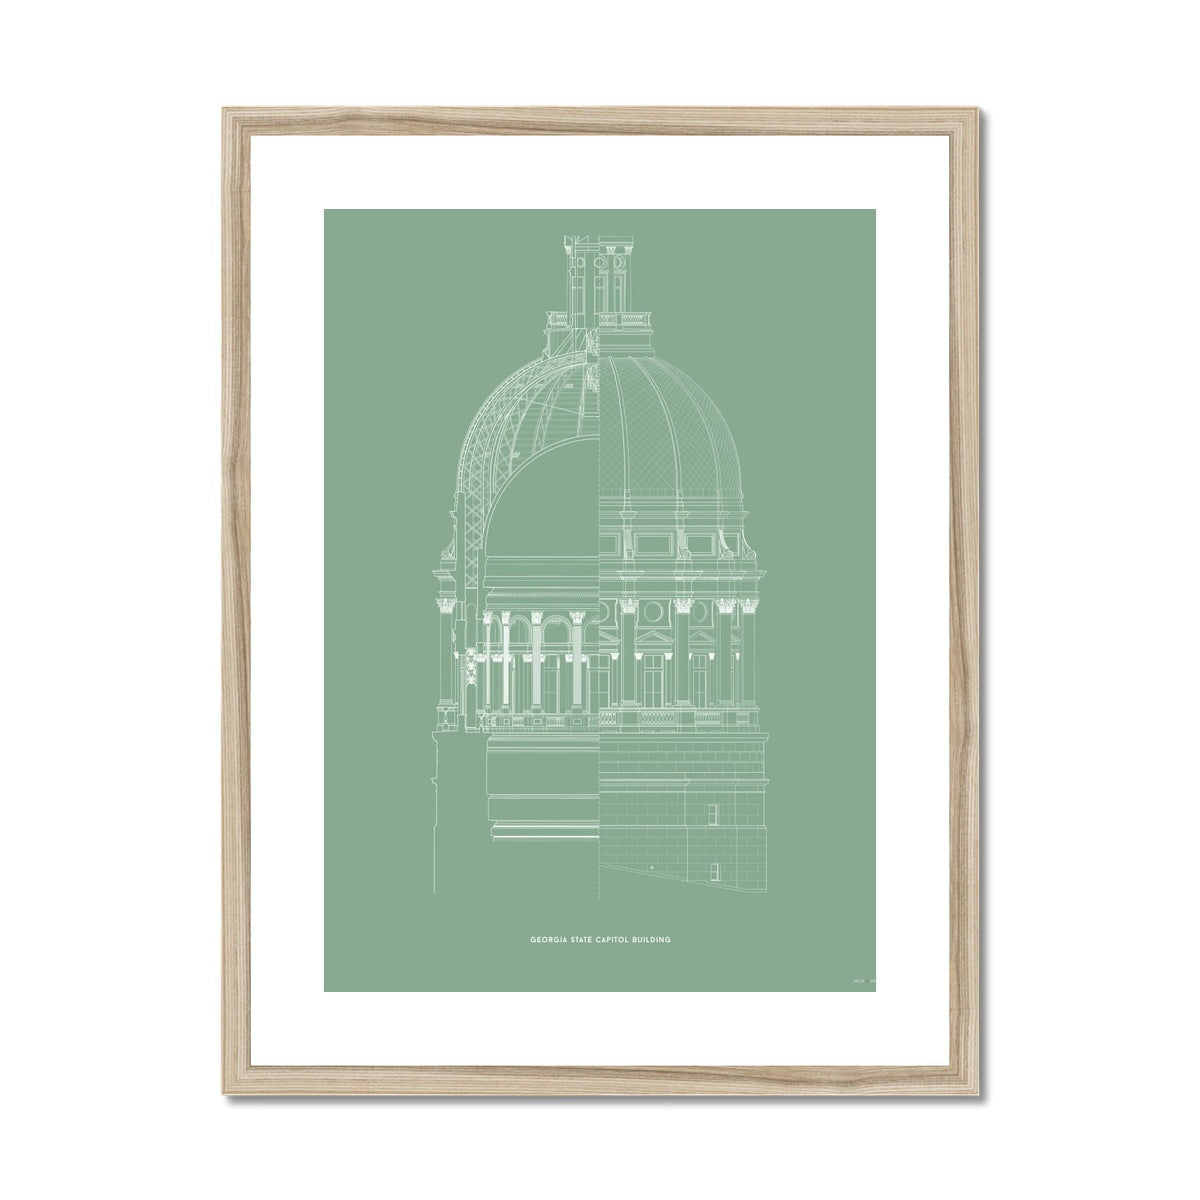 The Georgia State Capitol Building - Dome Cross Section - Green -  Framed & Mounted Print